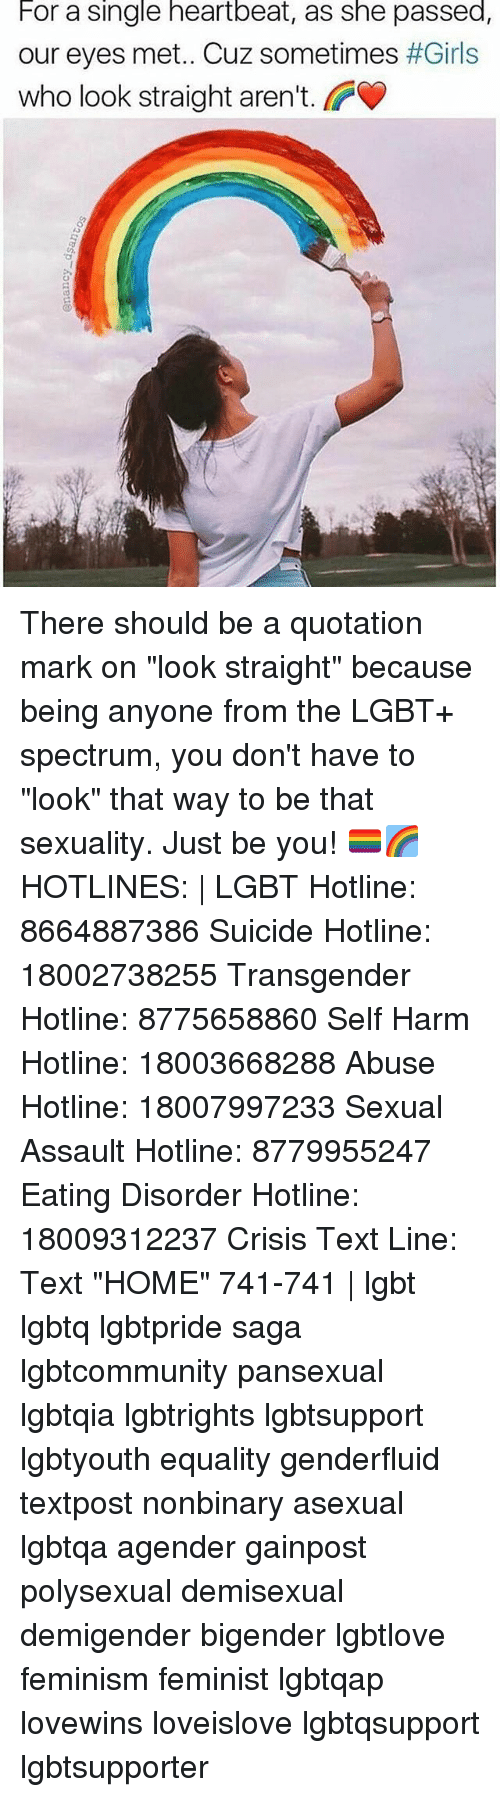 "heartbeats: For a single heartbeat, as she passed,  our eyes met. Cuz sometimes #Girls  who look straight aren't.  O) There should be a quotation mark on ""look straight"" because being anyone from the LGBT+ spectrum, you don't have to ""look"" that way to be that sexuality. Just be you! 🏳️‍🌈🌈 HOTLINES: 